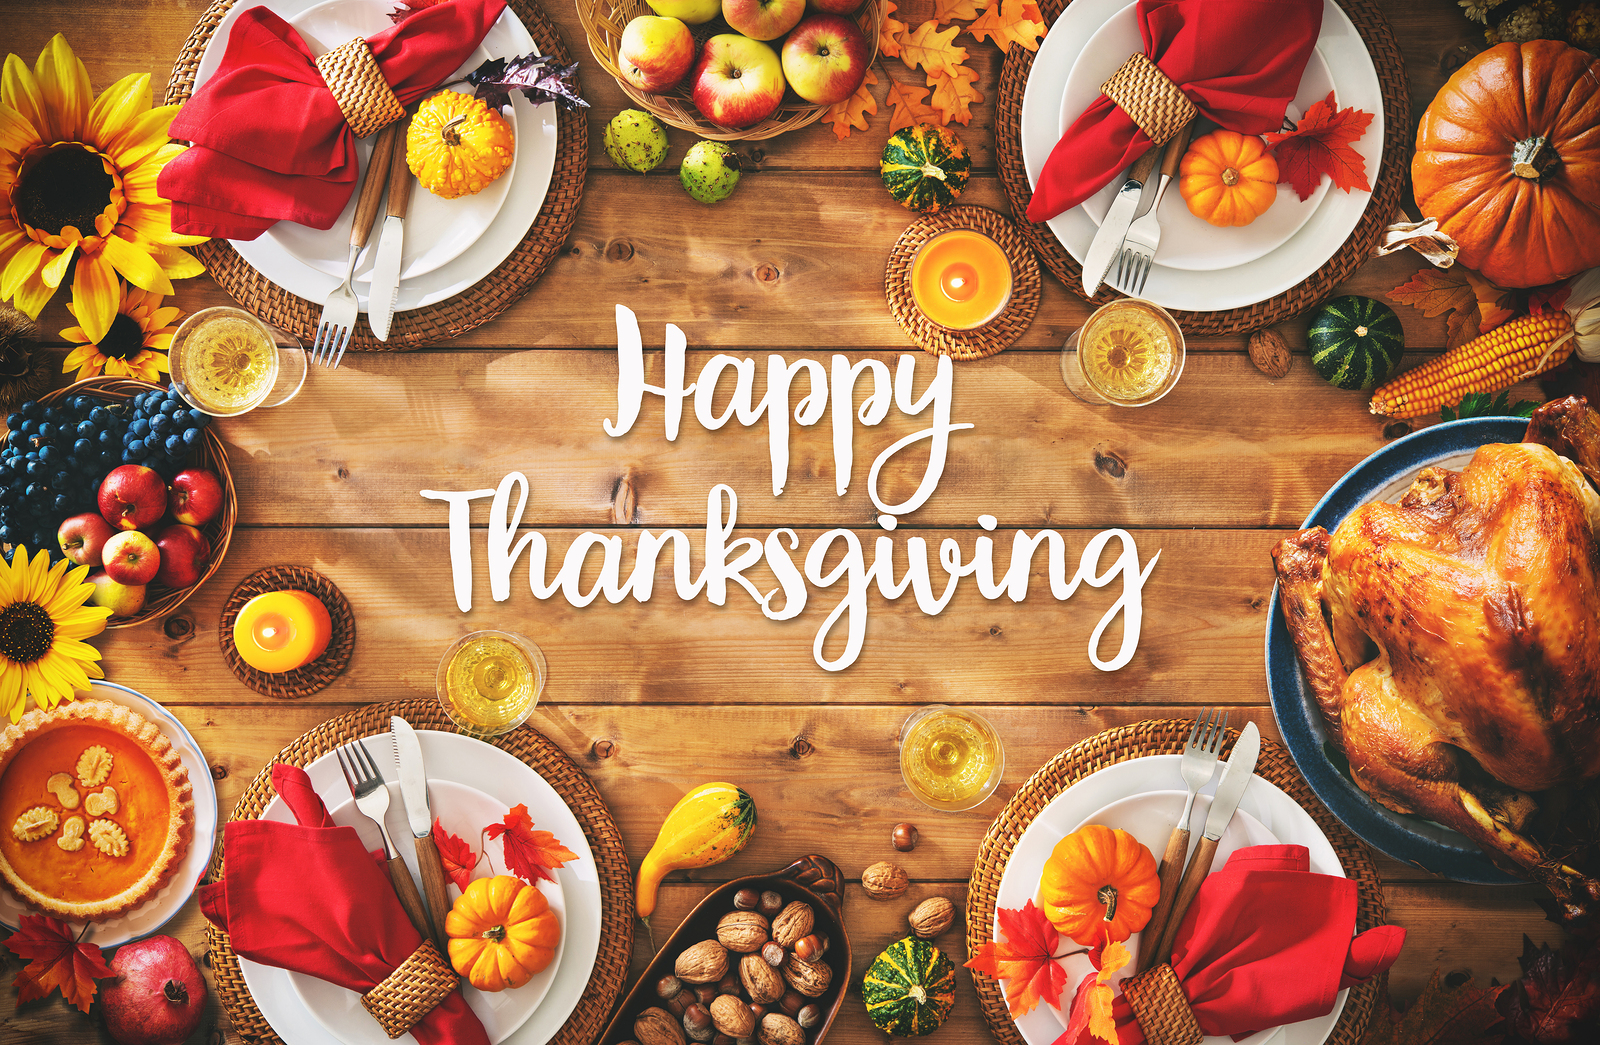 Come enjoy Thanksgiving Day dinner with us!